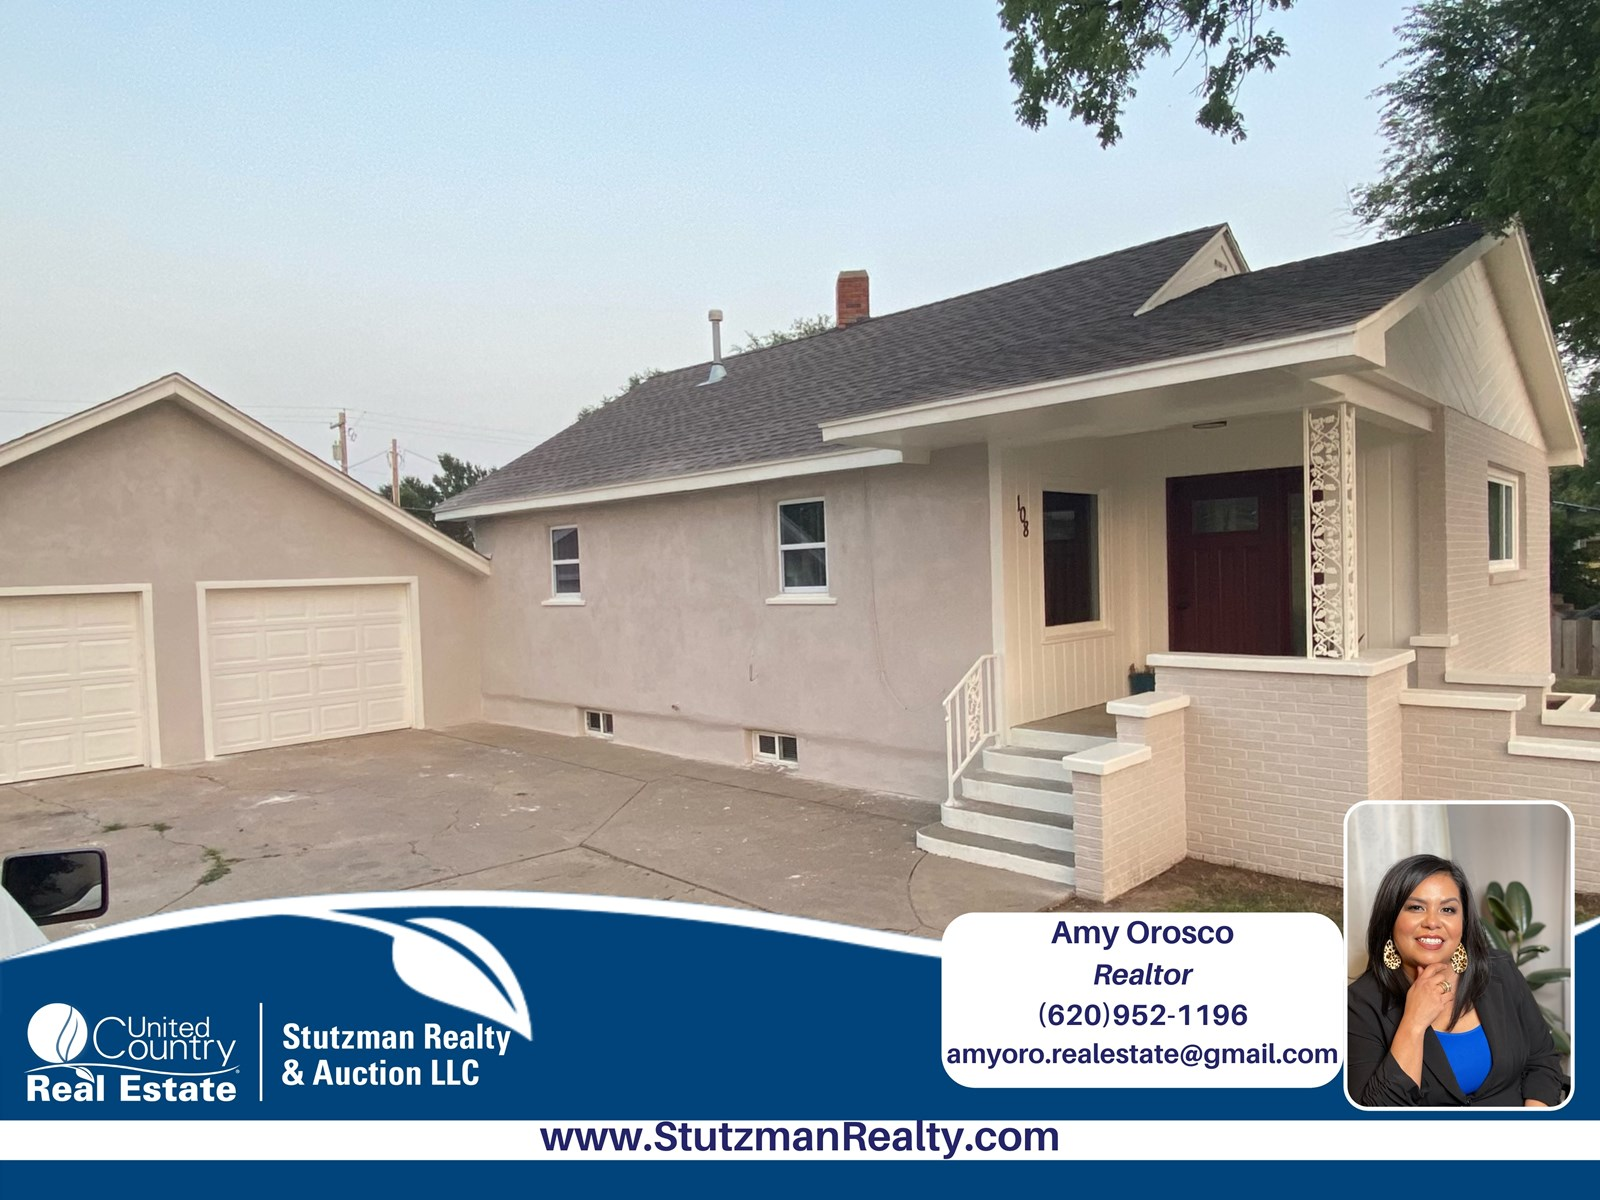 AFFORDABLE HOME CLOSE TO SCHOOLS FOR SALE IN ULYSSES